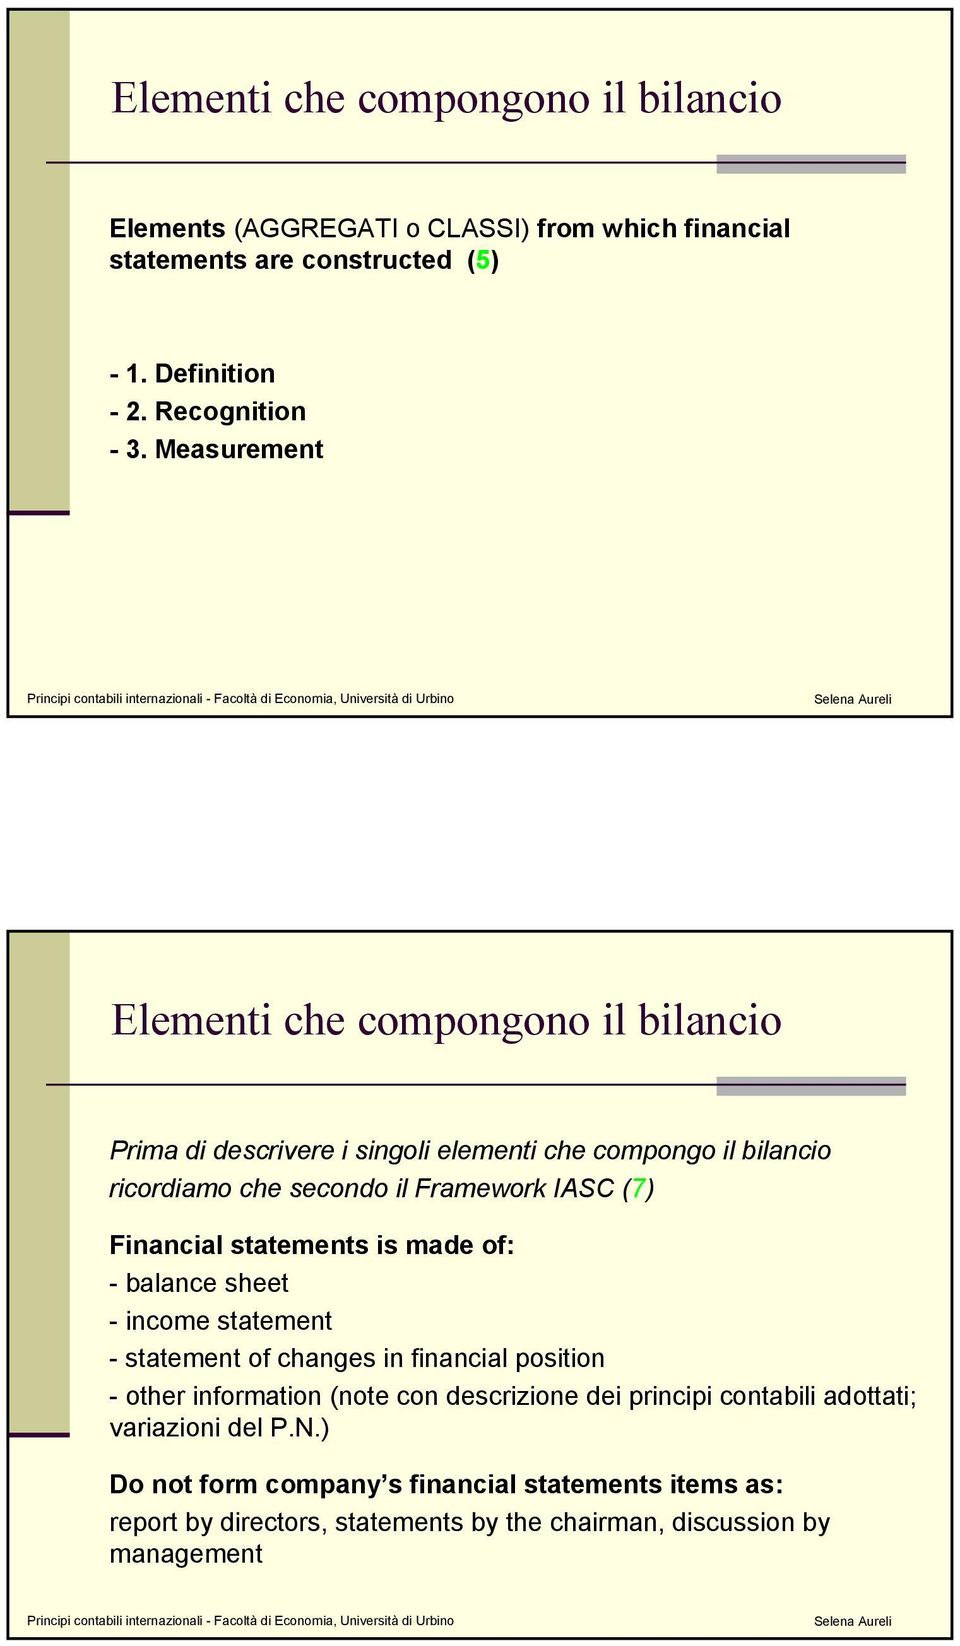 Financial statements is made of: - balance sheet - income statement - statement of changes in financial position - other information (note con descrizione dei